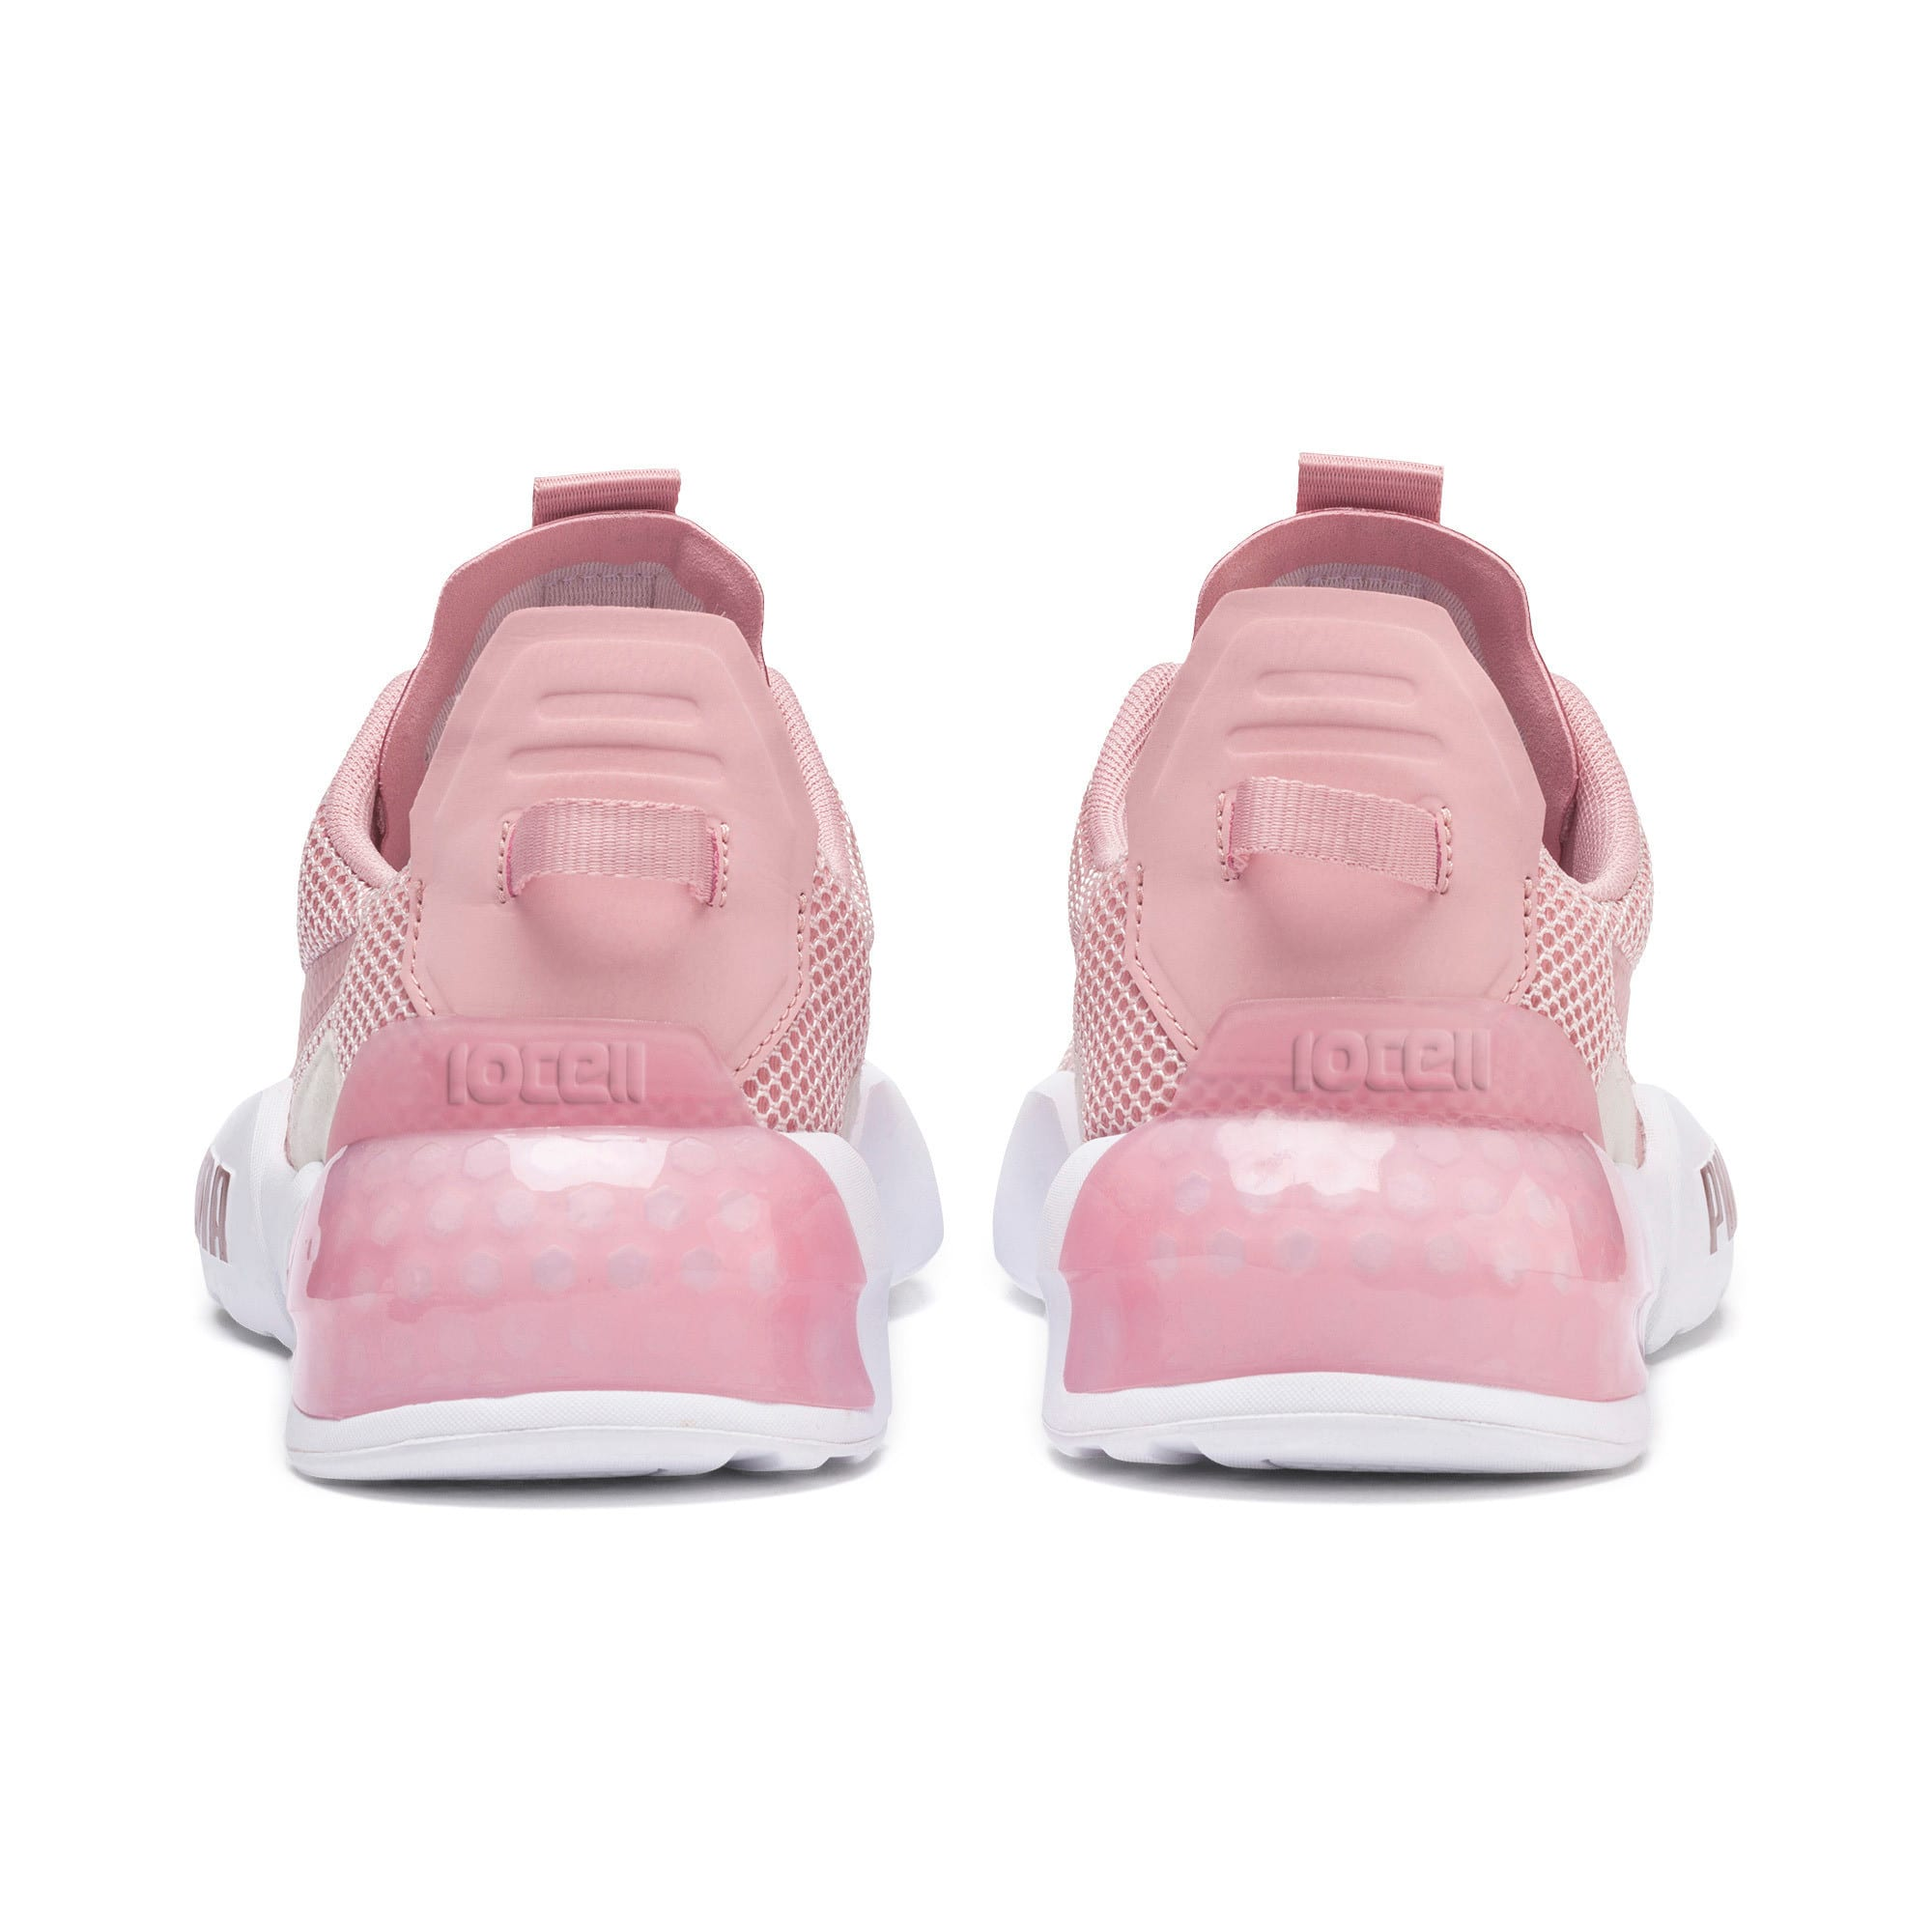 Thumbnail 5 of CELL Phase Women's Trainers, Bridal Rose-Pastel Parchment, medium-IND